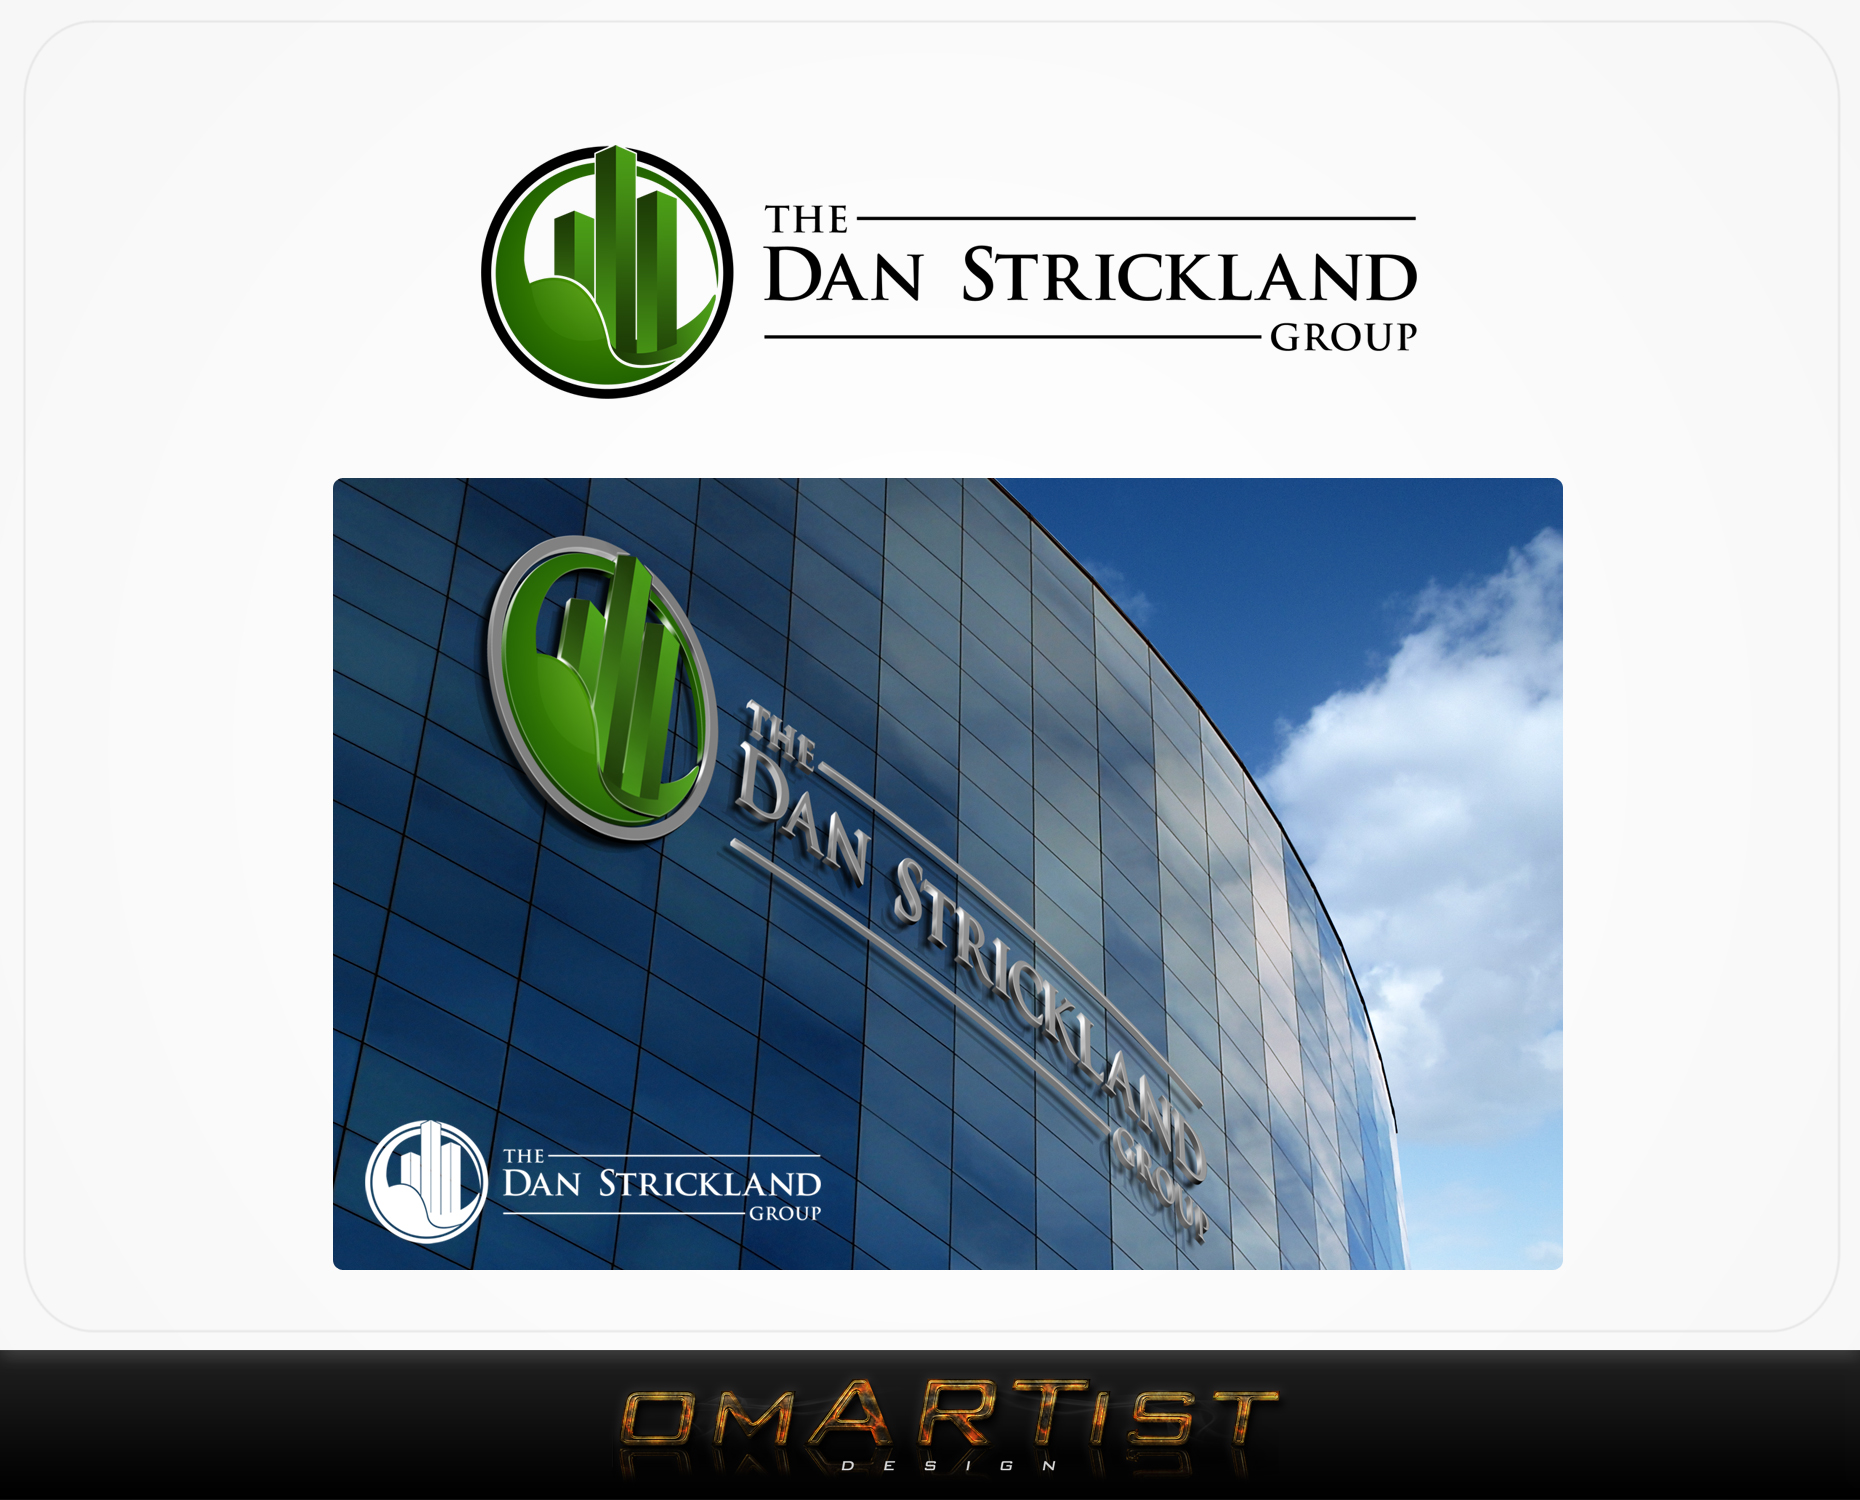 Logo Design by omARTist - Entry No. 177 in the Logo Design Contest Creative Logo Design for The Dan Strickland Group.